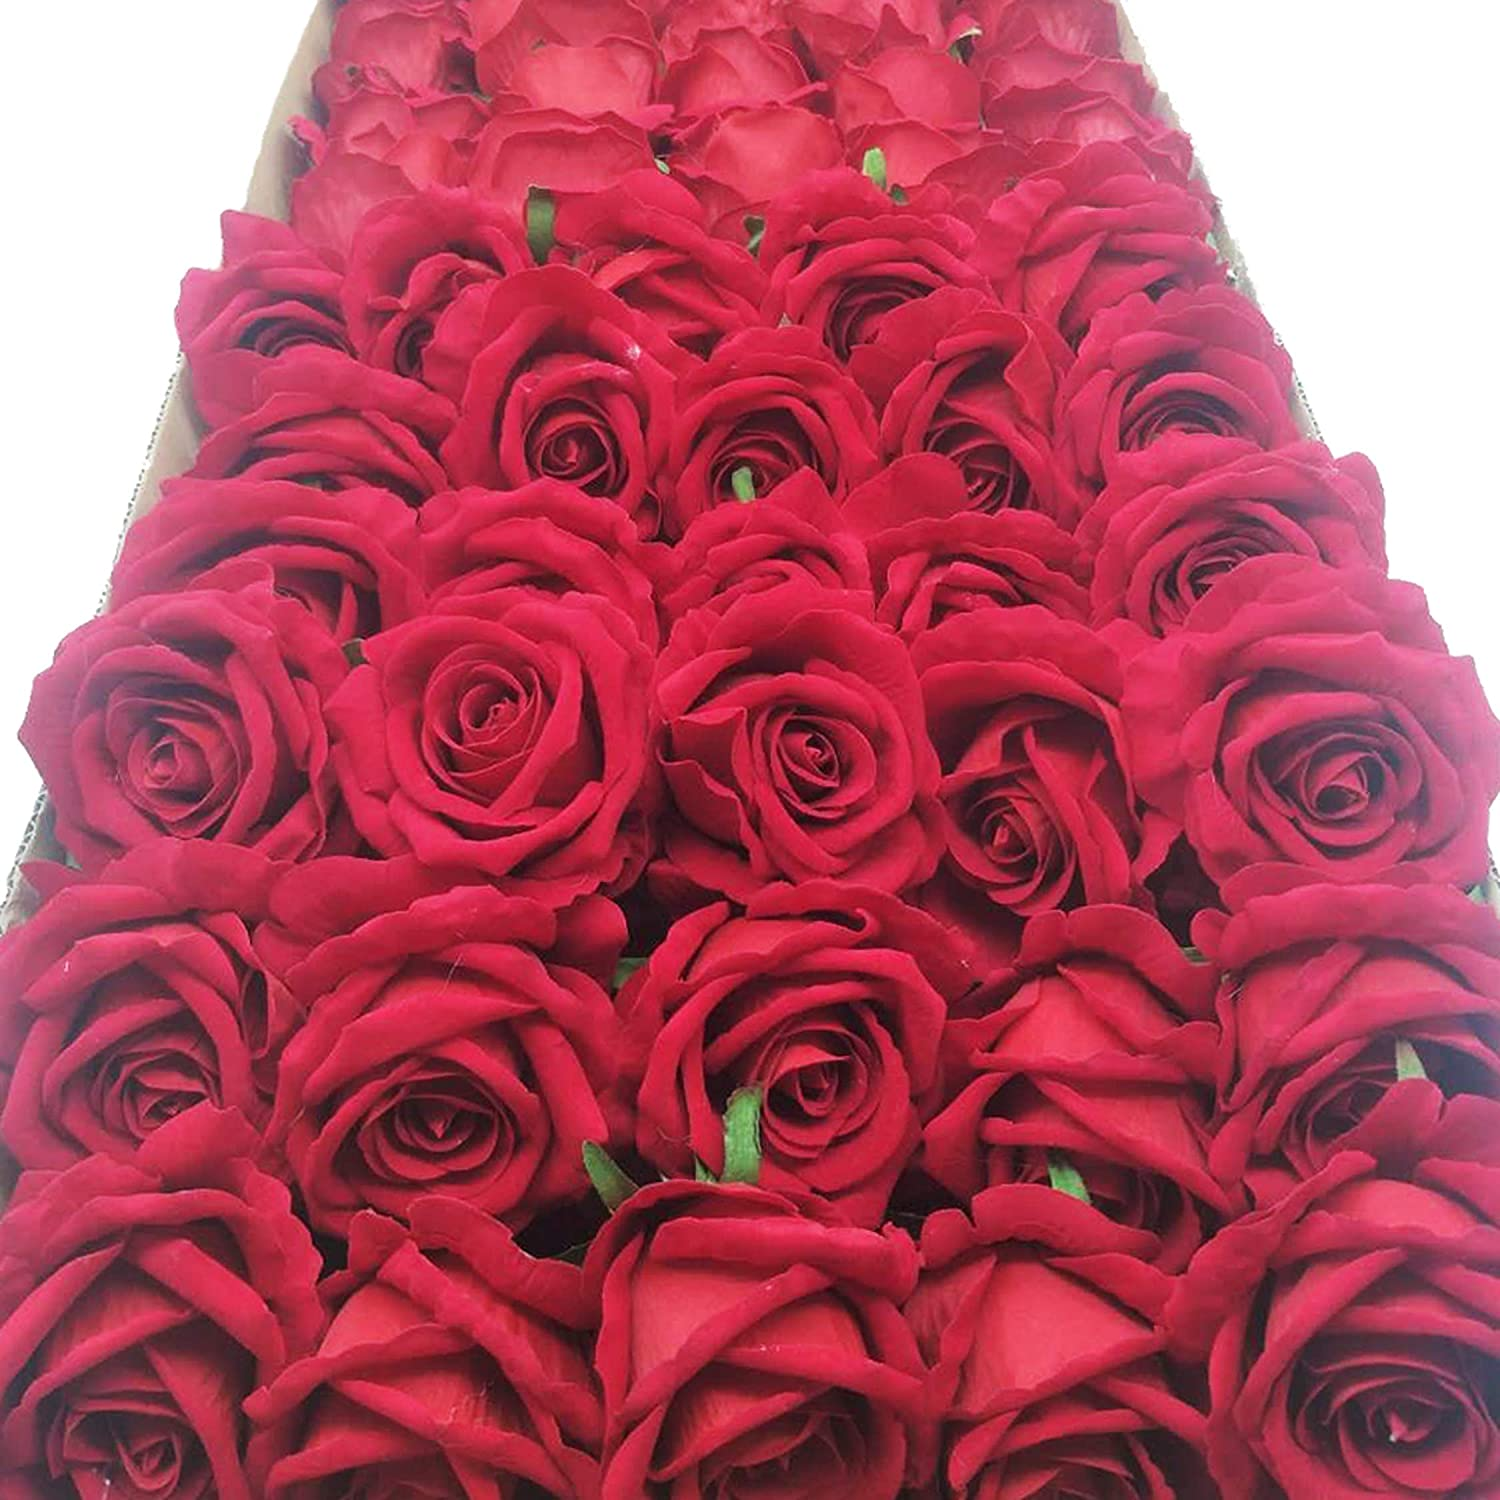 cn-Knight Artificial Flower in Bulk Wholesale 100pcs 10'' Velvet Silk Rose with Wire Stem Real Looking Fake Flower for Wedding Bouquet Bridal Shower Home Décor Flower Wall Hair Flower Hat Trim (Red)